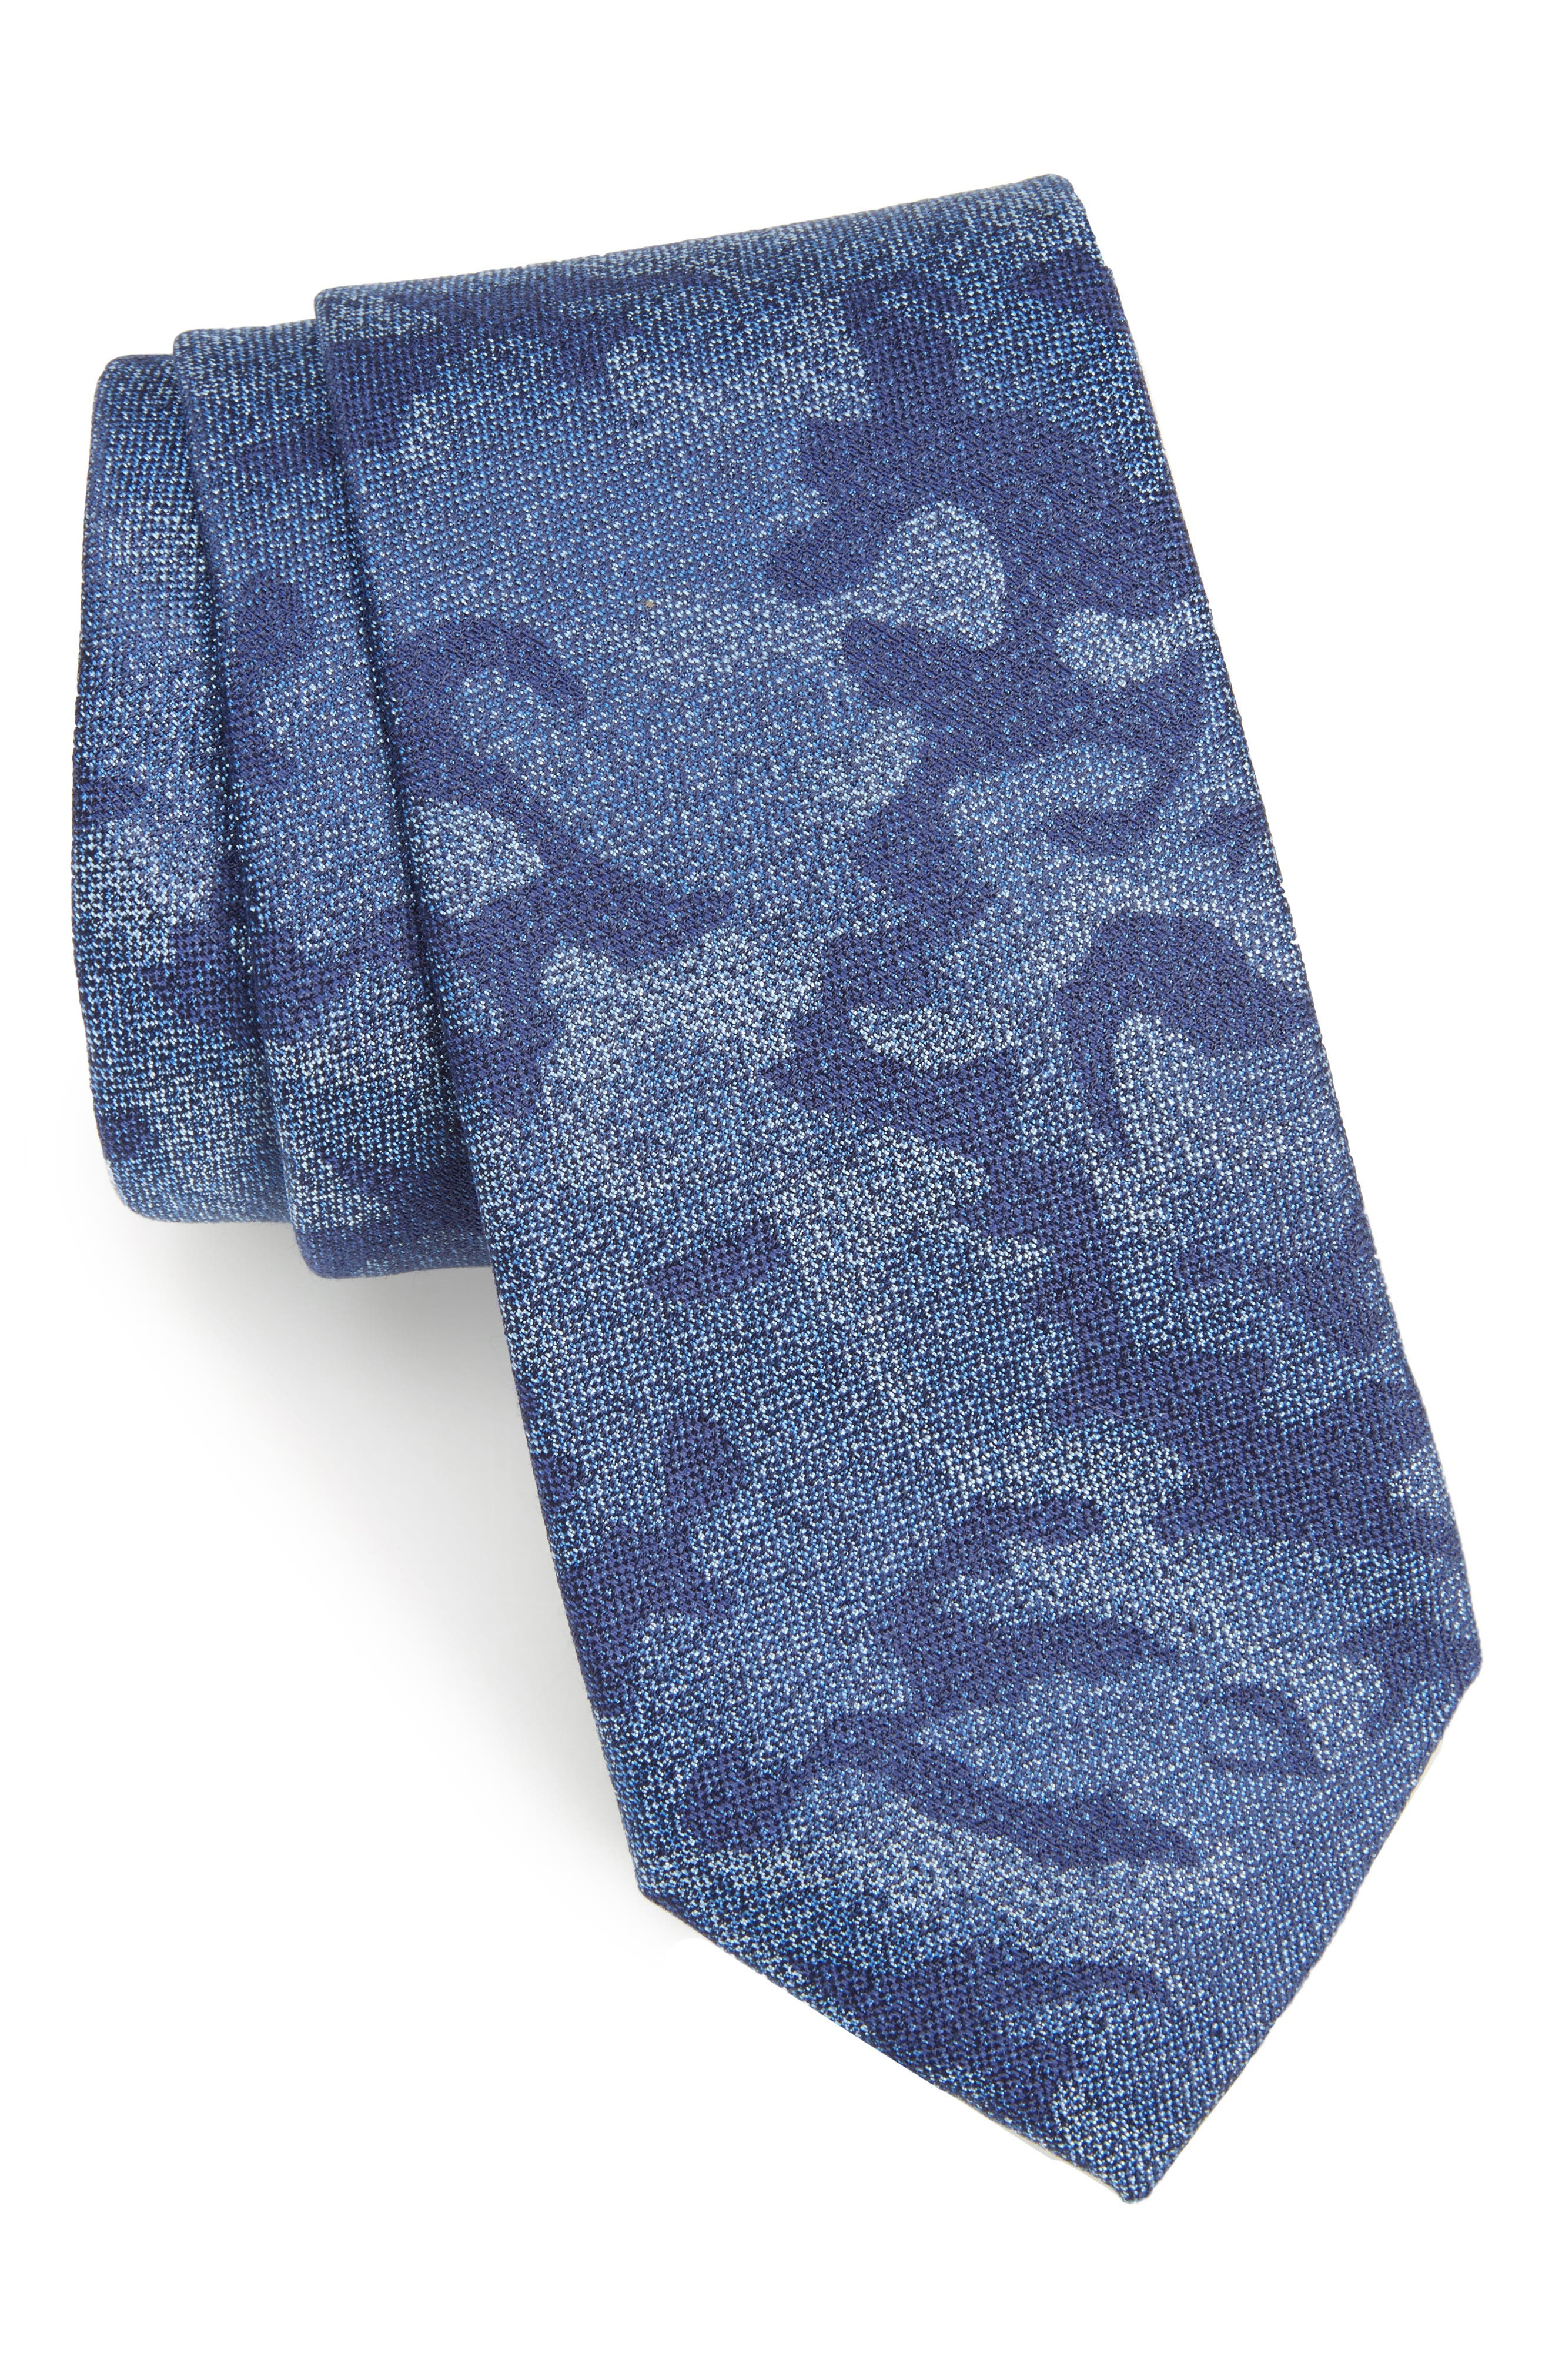 Morada Camo Silk & Cotton Tie,                             Main thumbnail 1, color,                             410